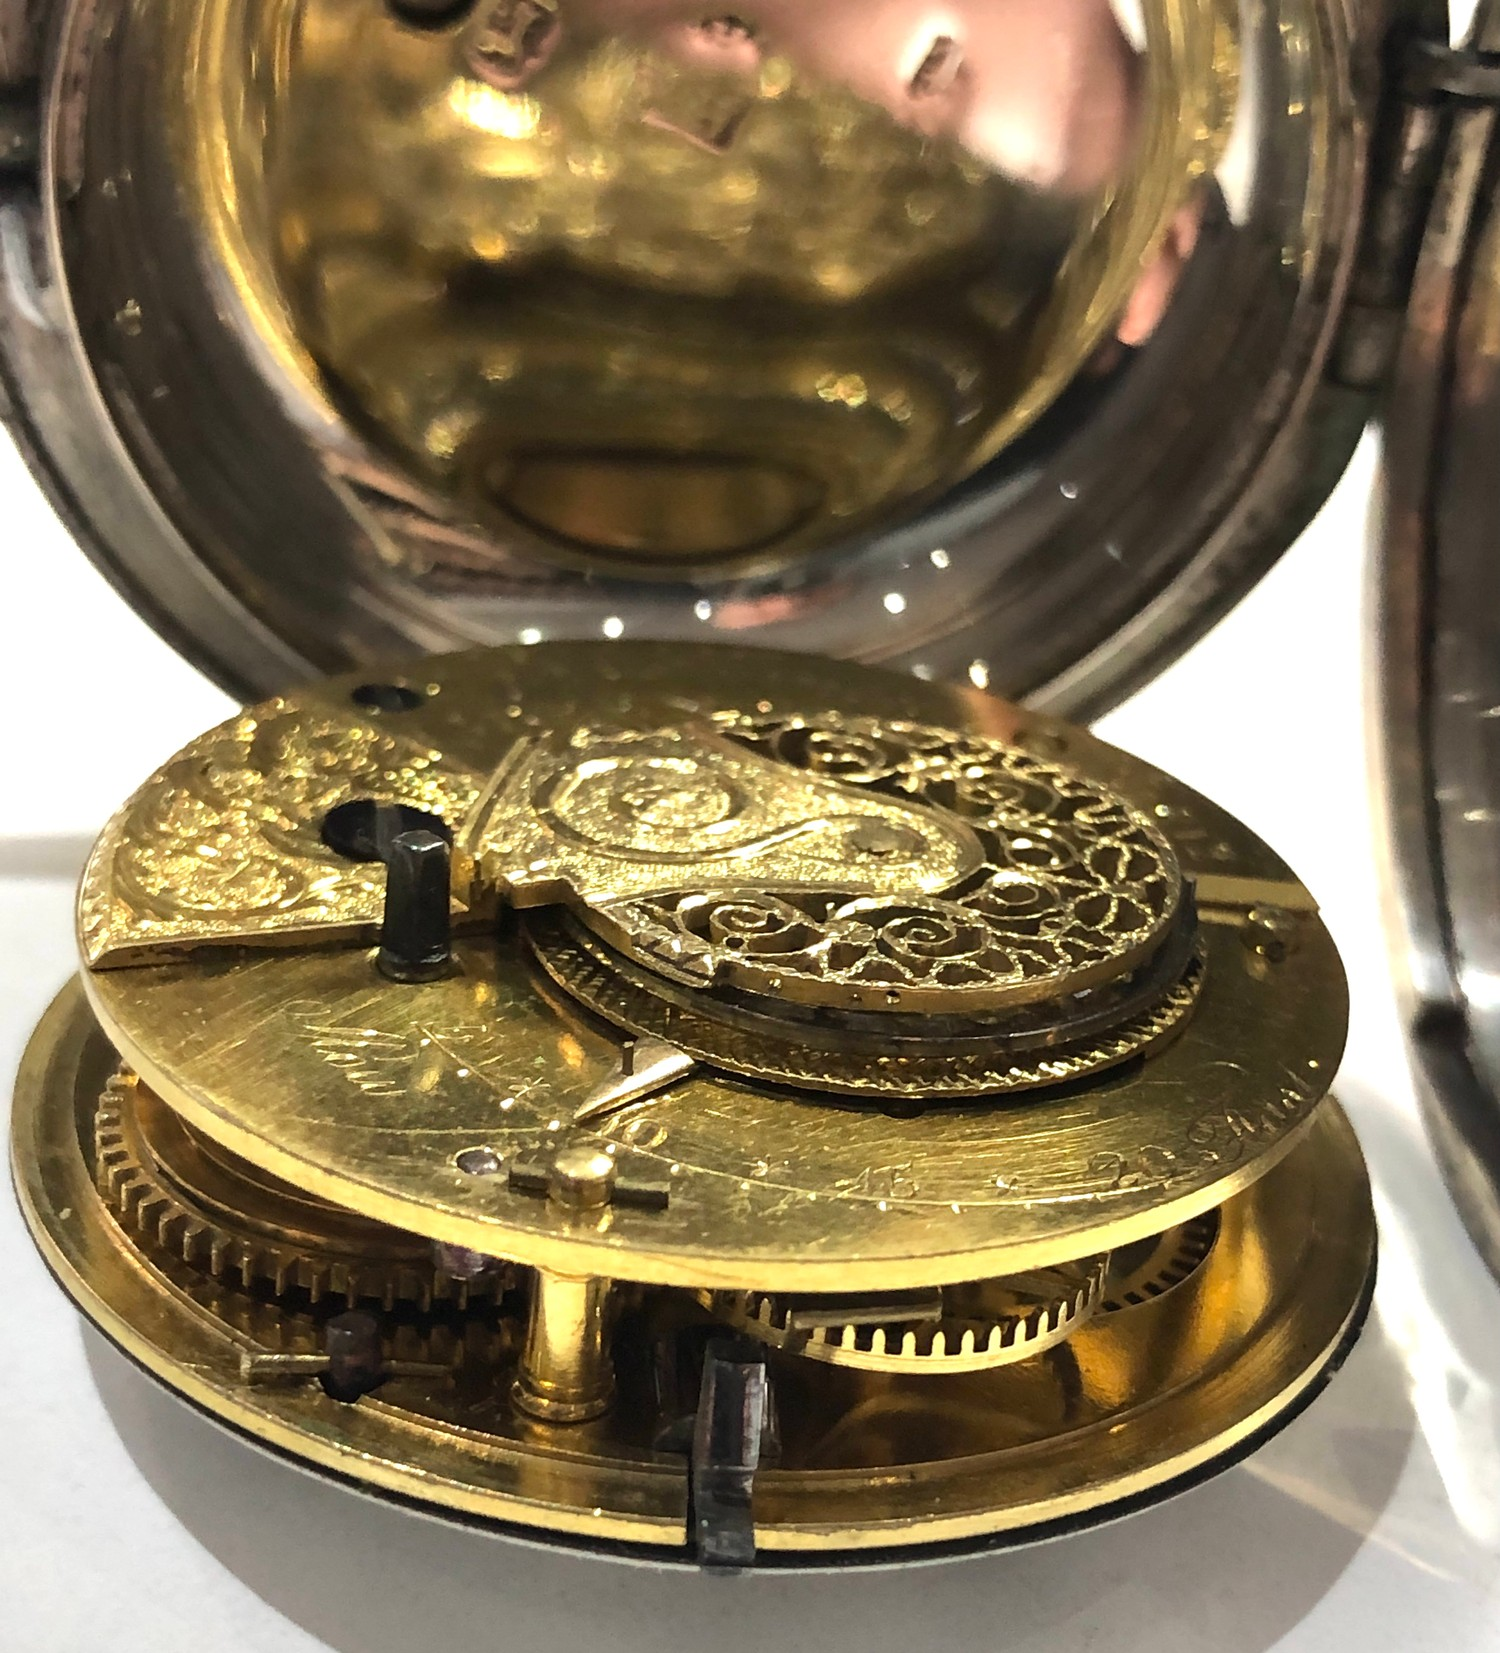 Fine antique silver full hunter case verge fusee pocket watch by Rob Turnball Greenock watch is in - Image 5 of 9